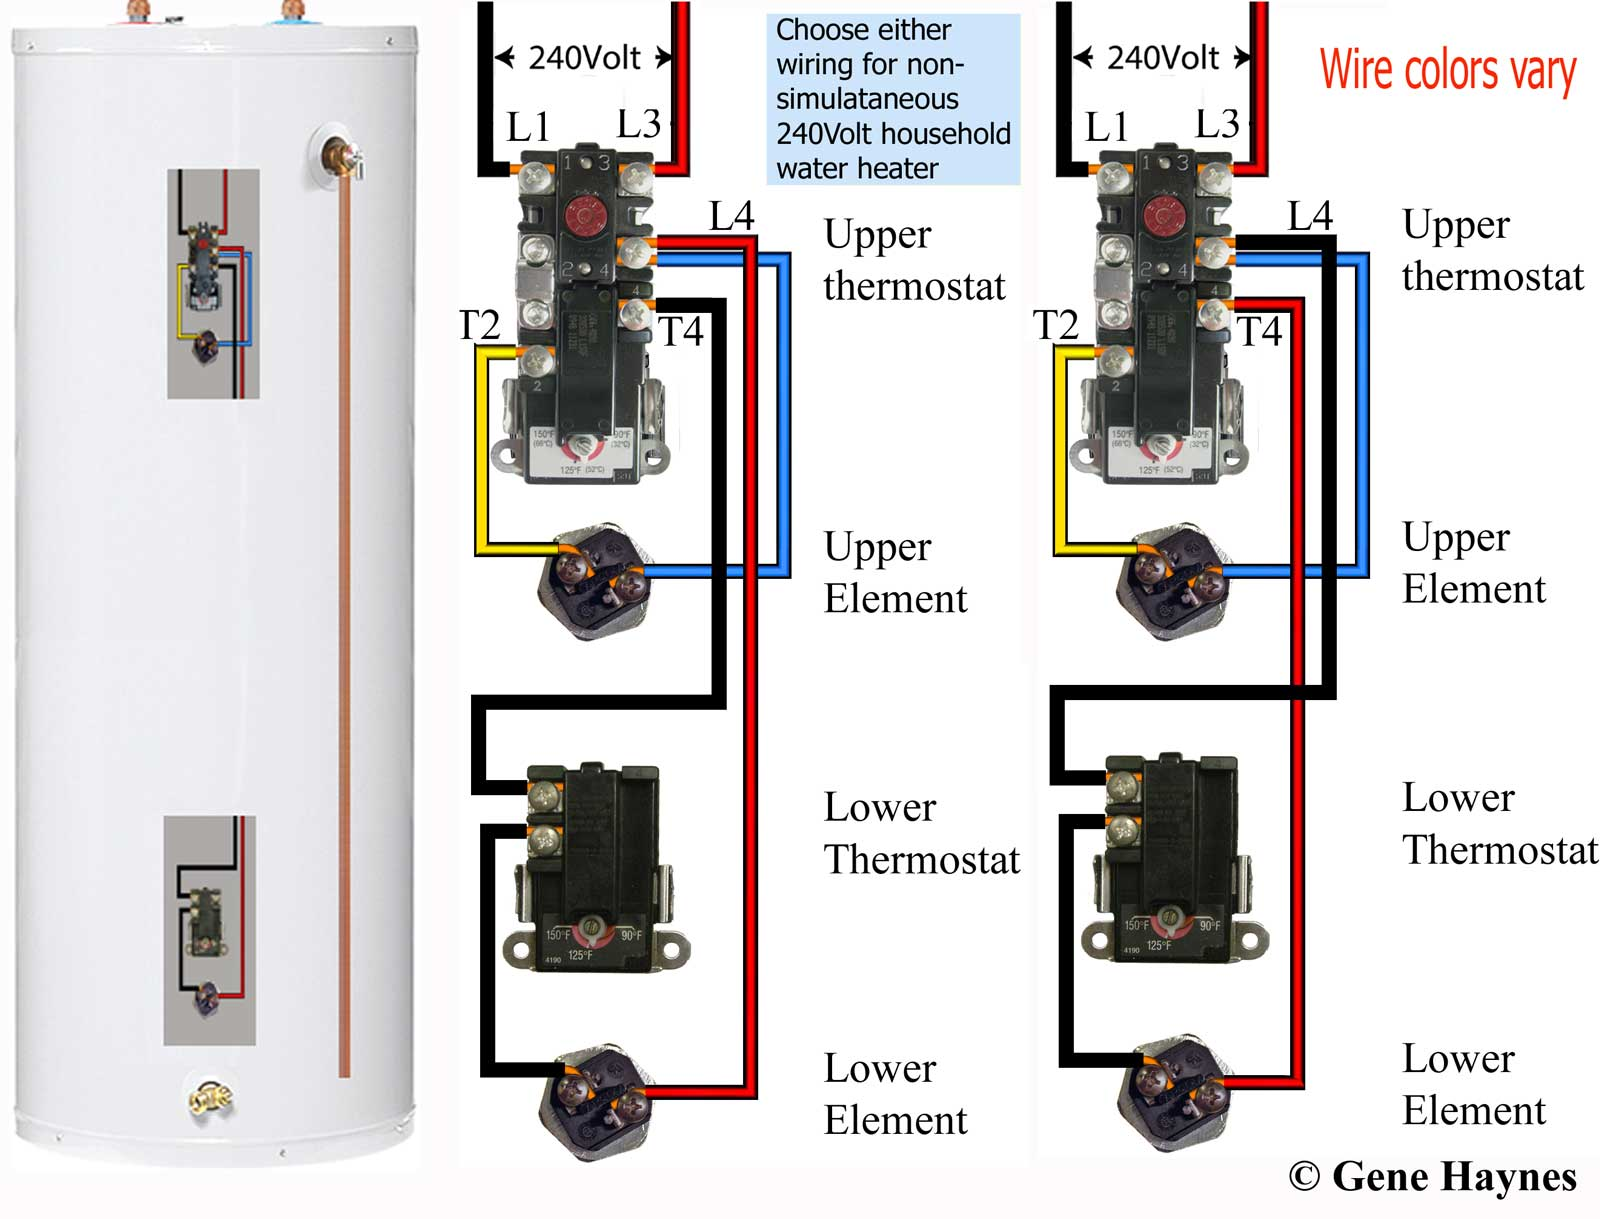 hight resolution of larger image thermostats and elements